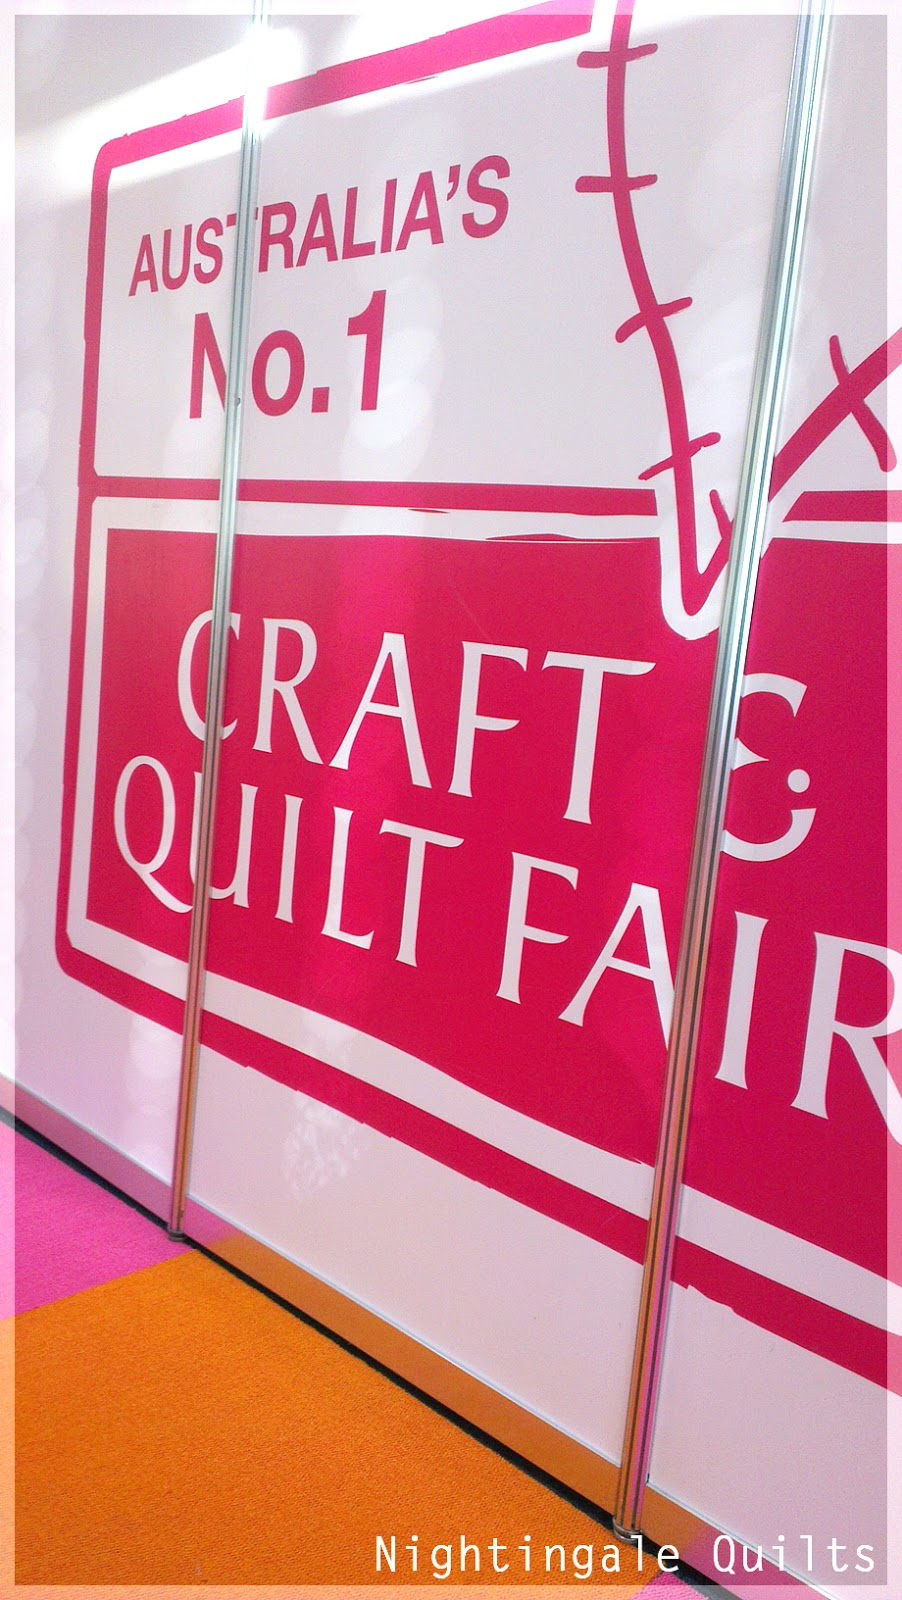 Nightingale quilts sydney craft and quilt fair 2013 for Quilt and craft show